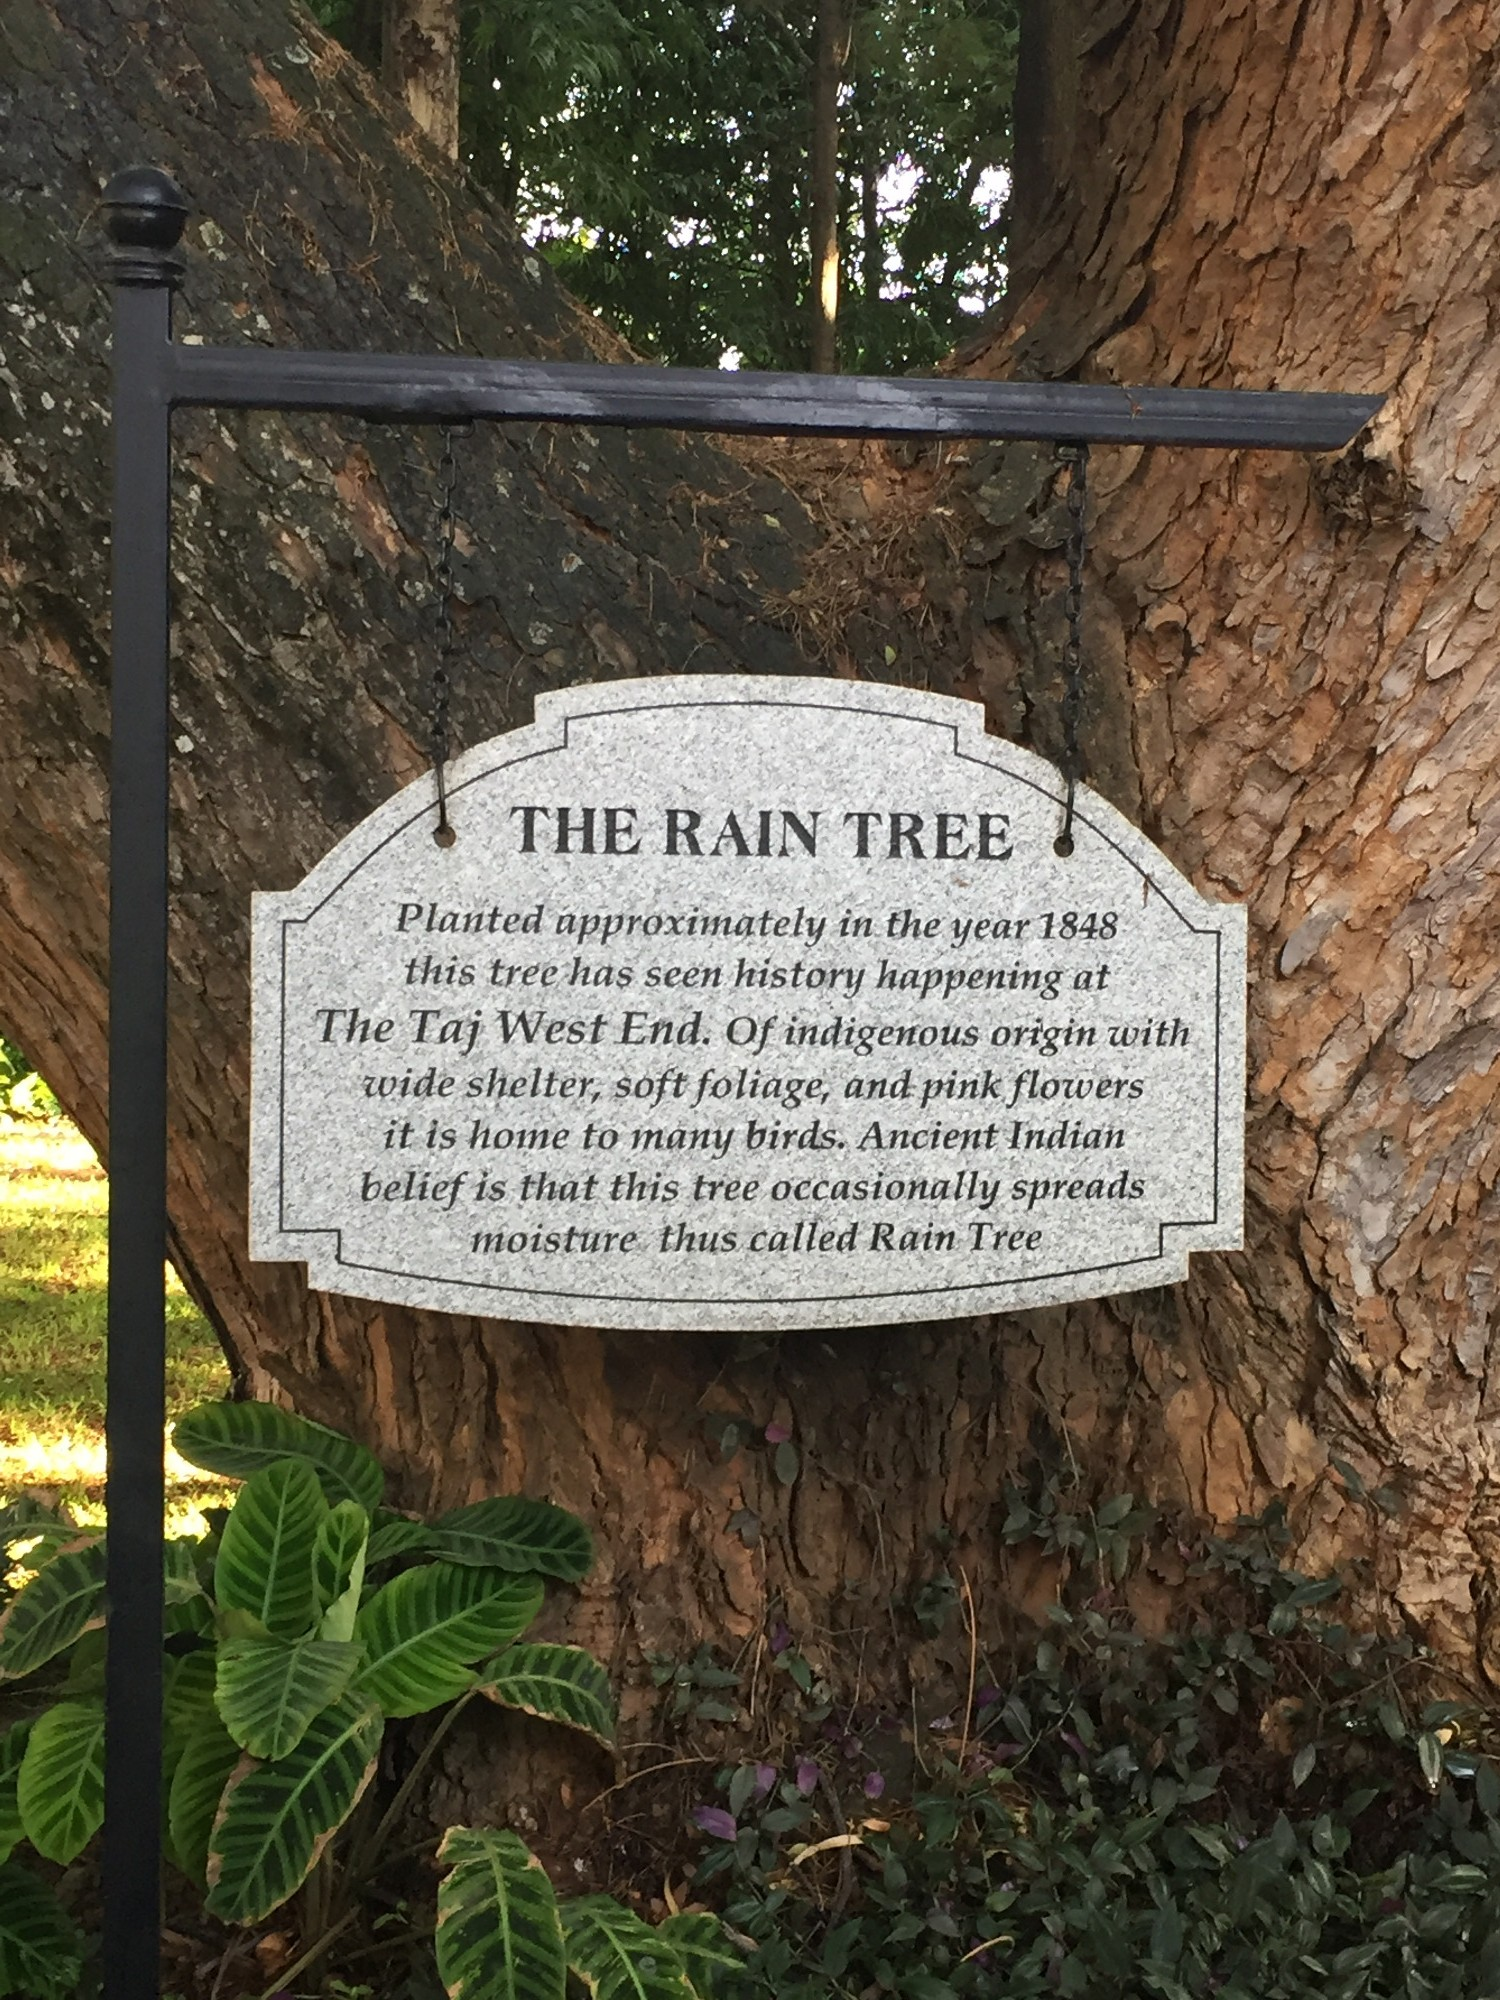 bangalore - Rain tree - explanation